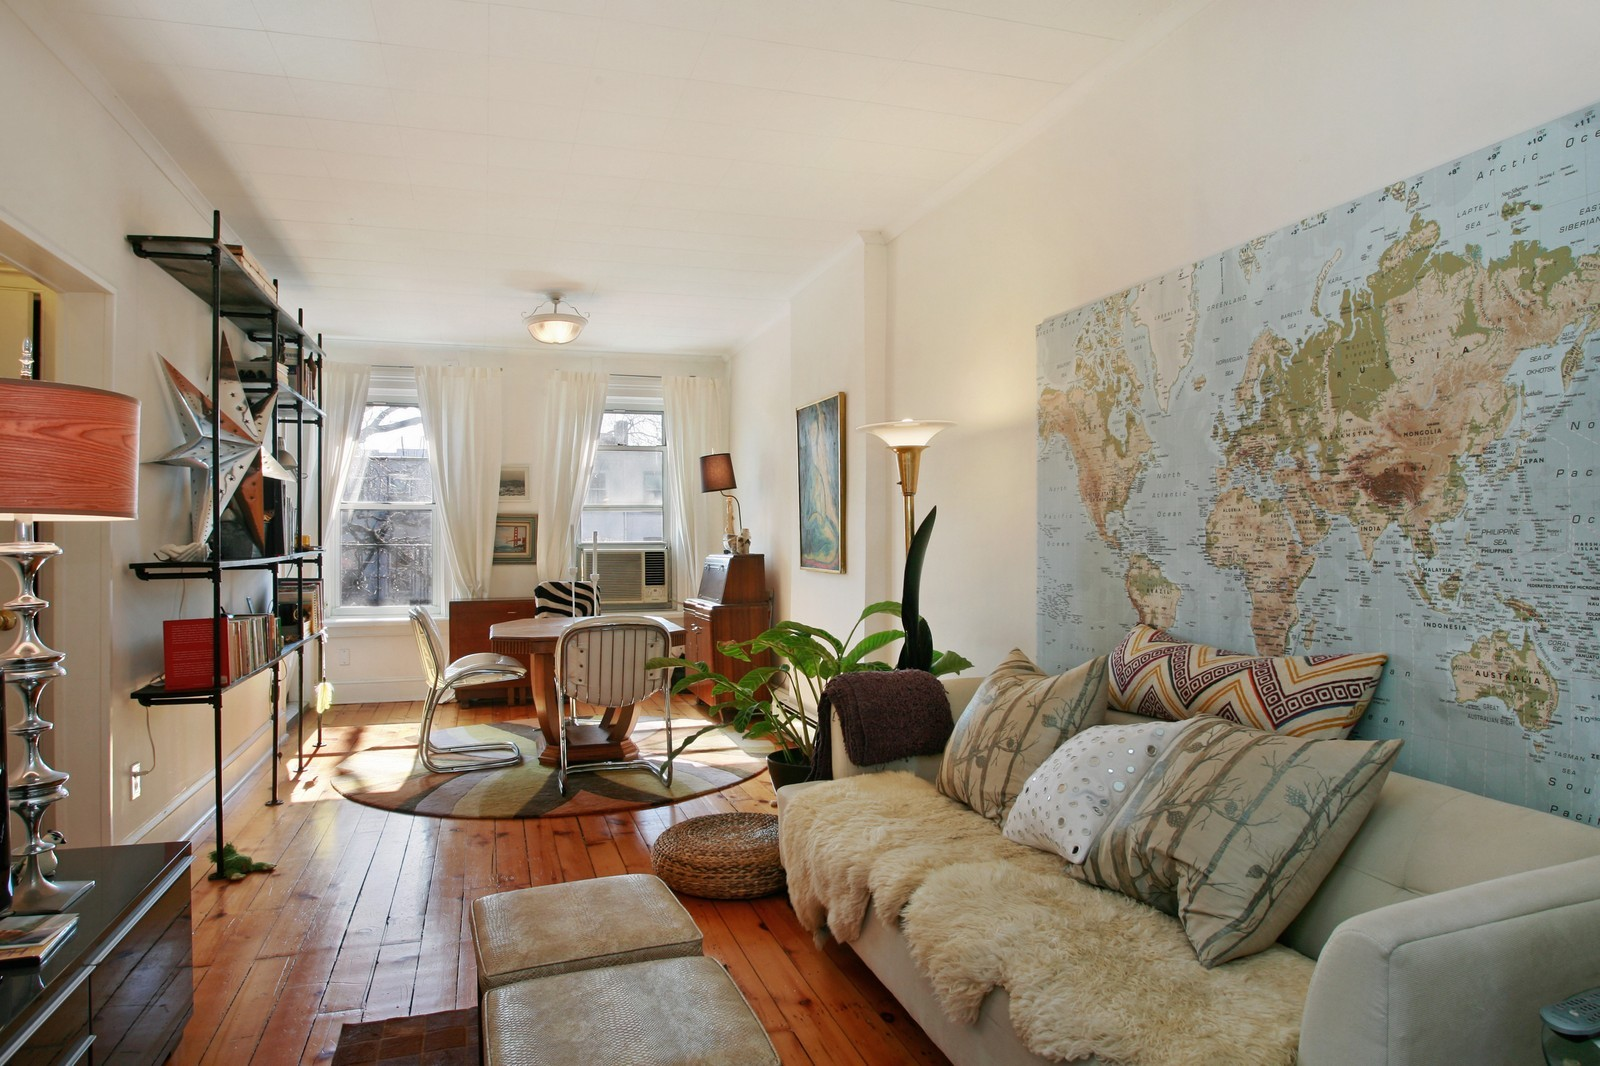 328 president street brooklyn ny 11231 virtual tour for Living room brooklyn 86 st